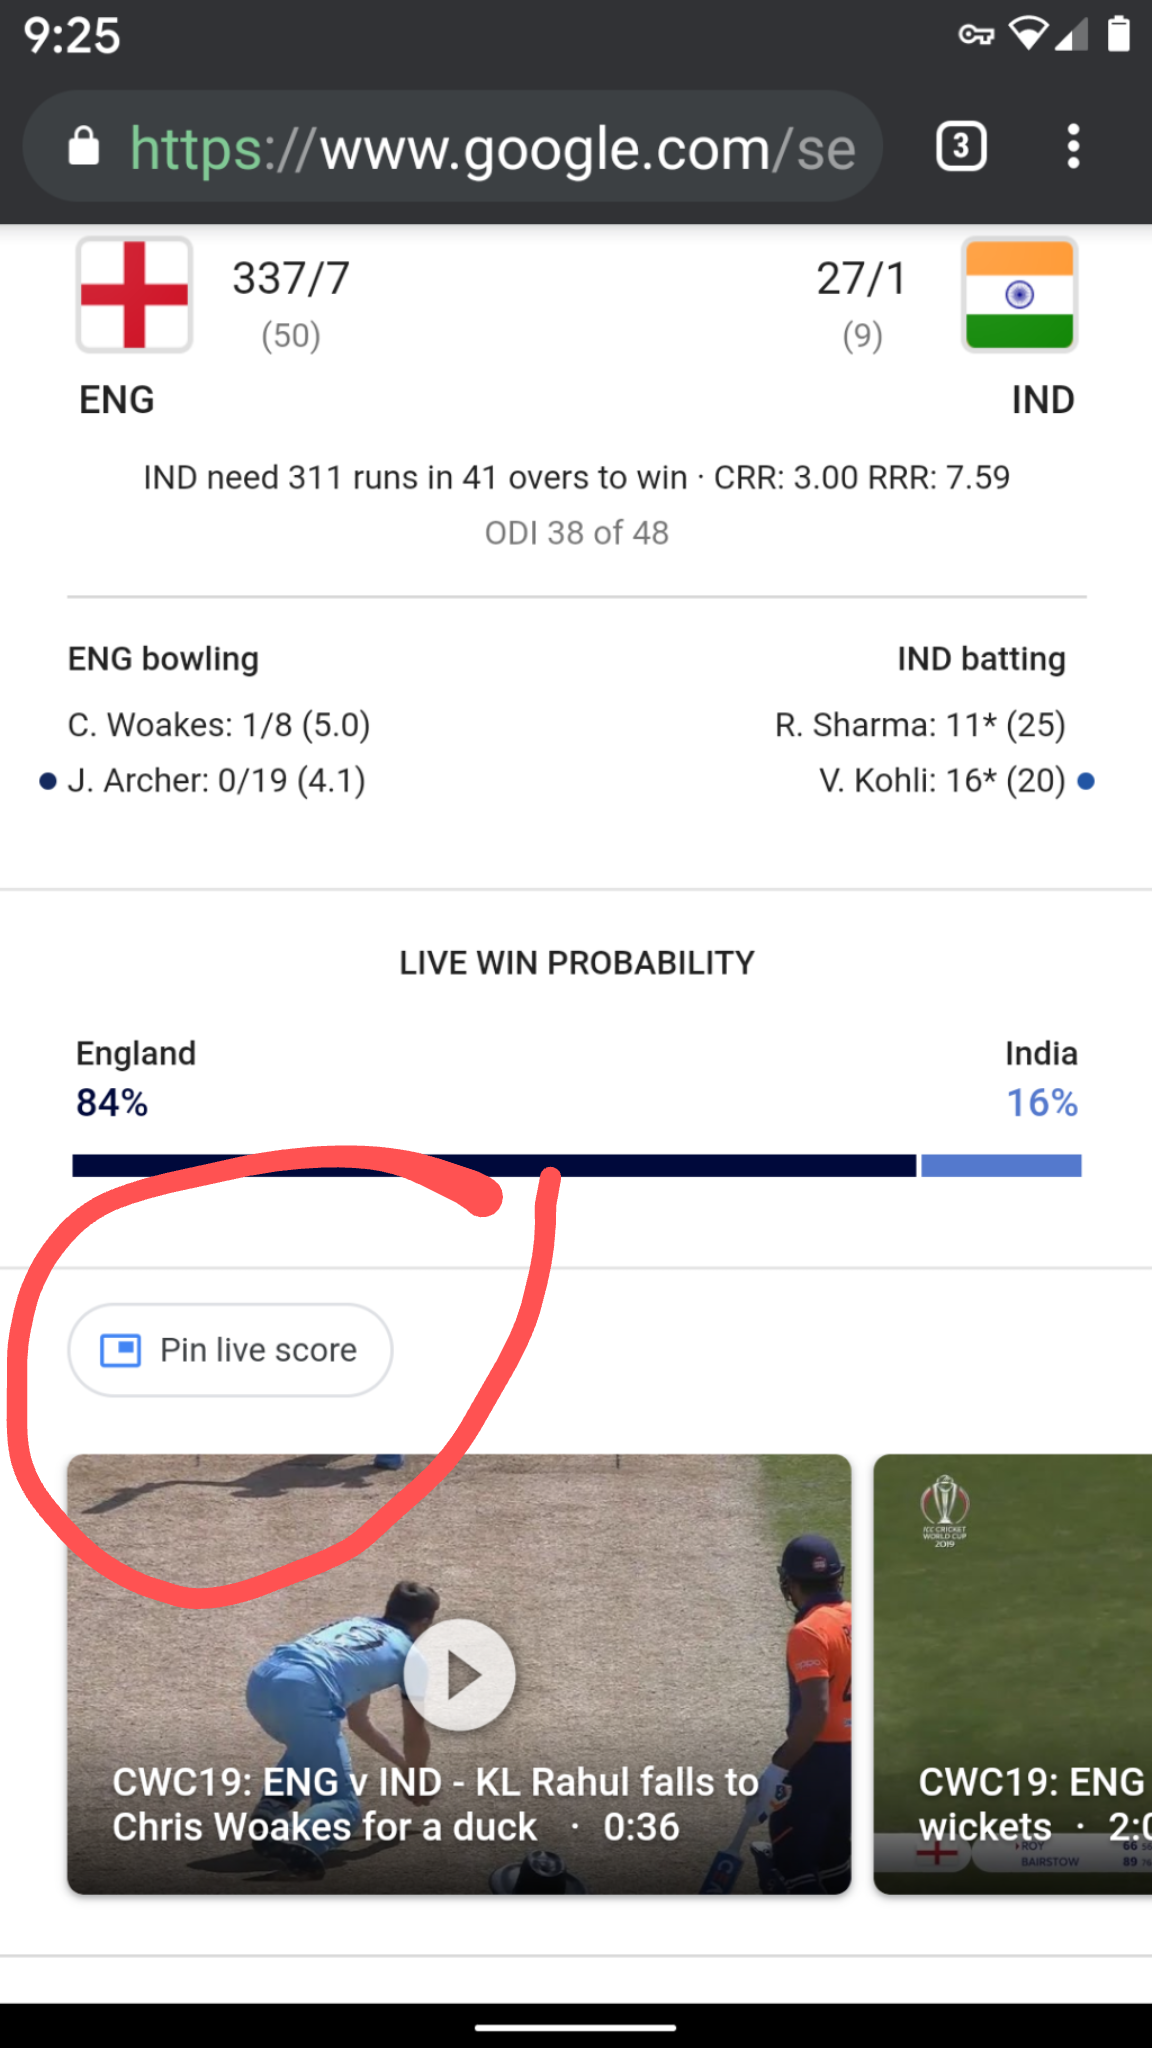 Pin live score redirects to firebase page Invalid Dynamic Link ...